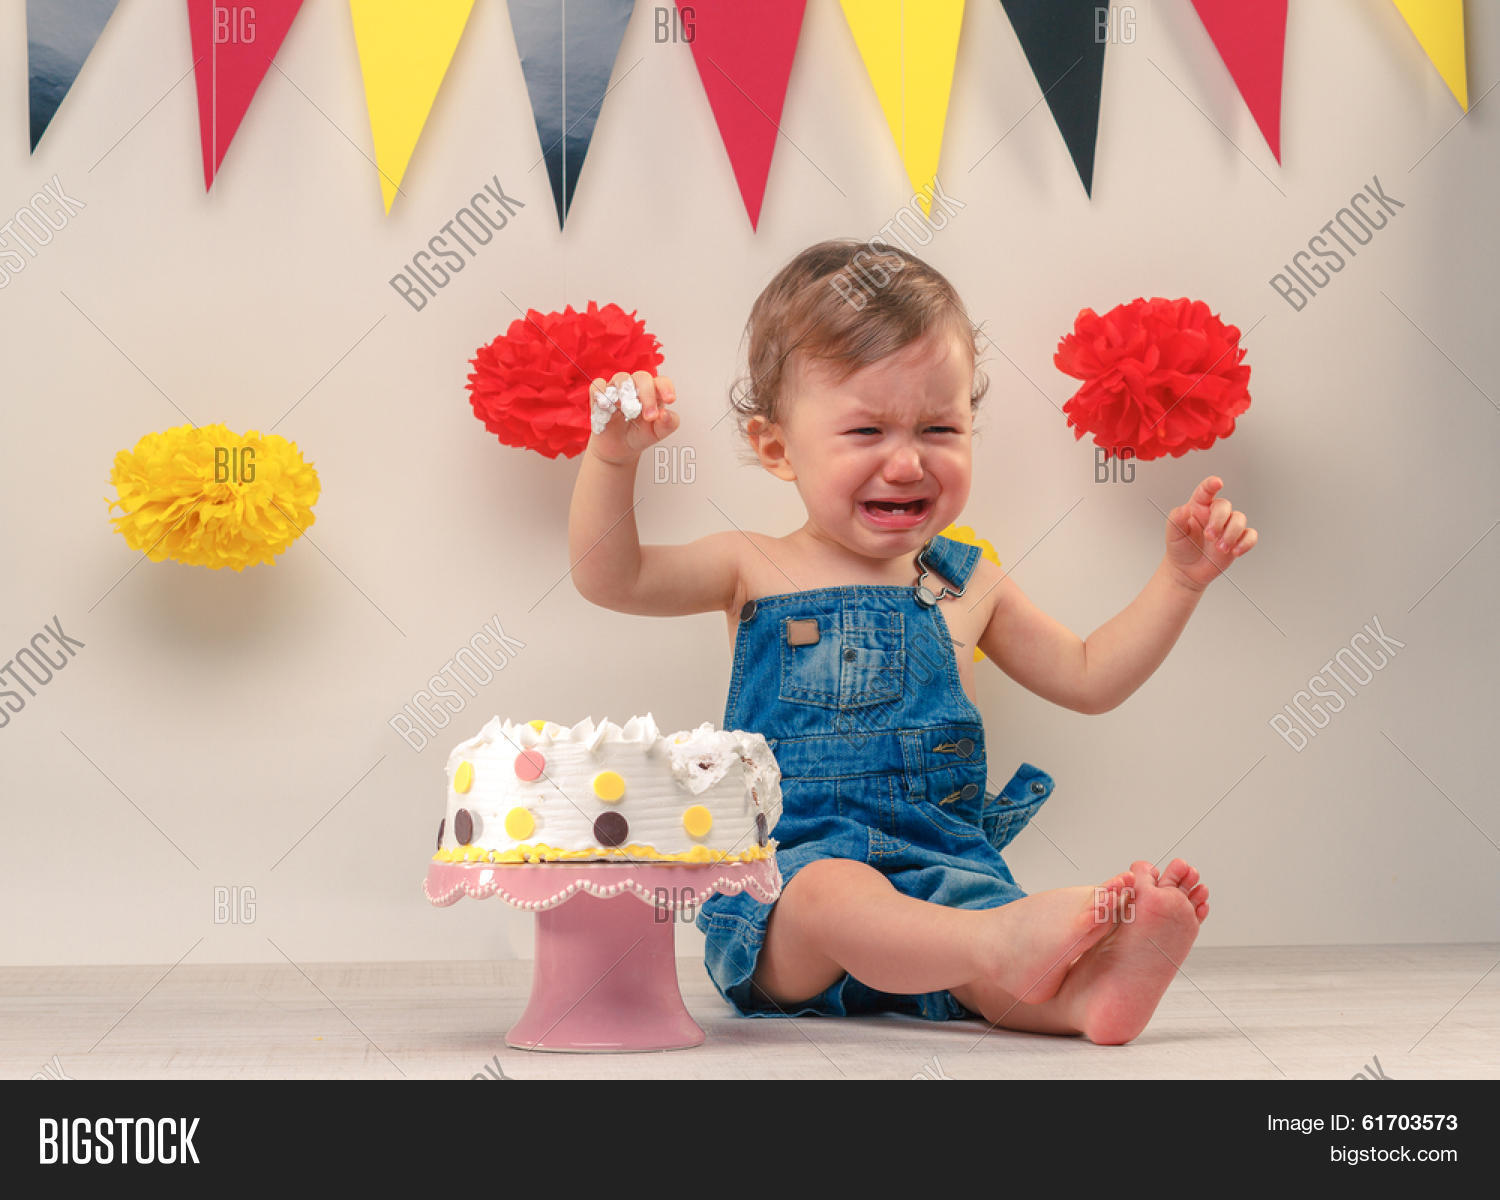 Baby Boy Crying While Eating His Birthday Party Cake Smash The